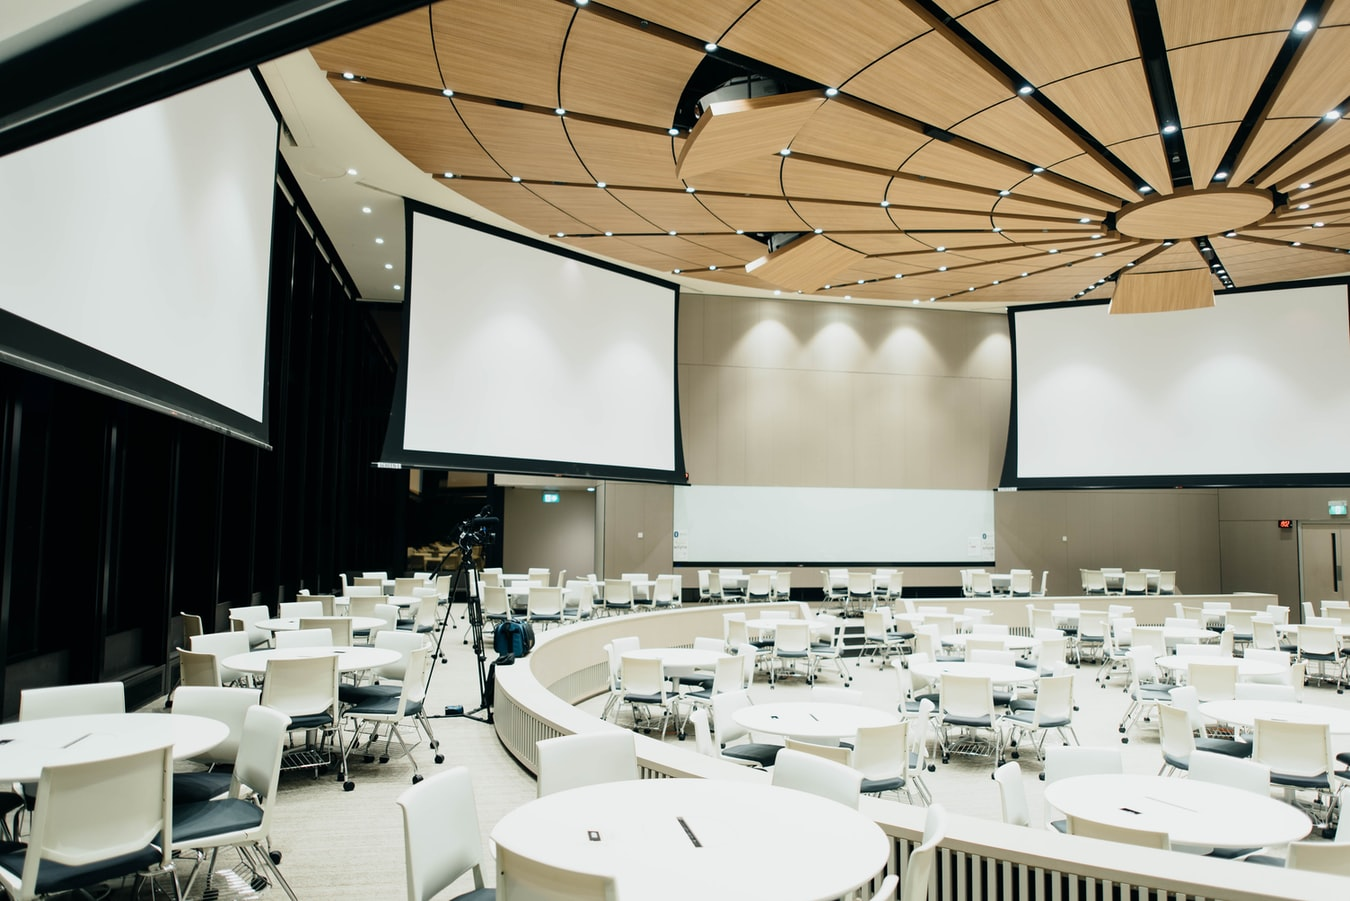 conference room for hybrid event